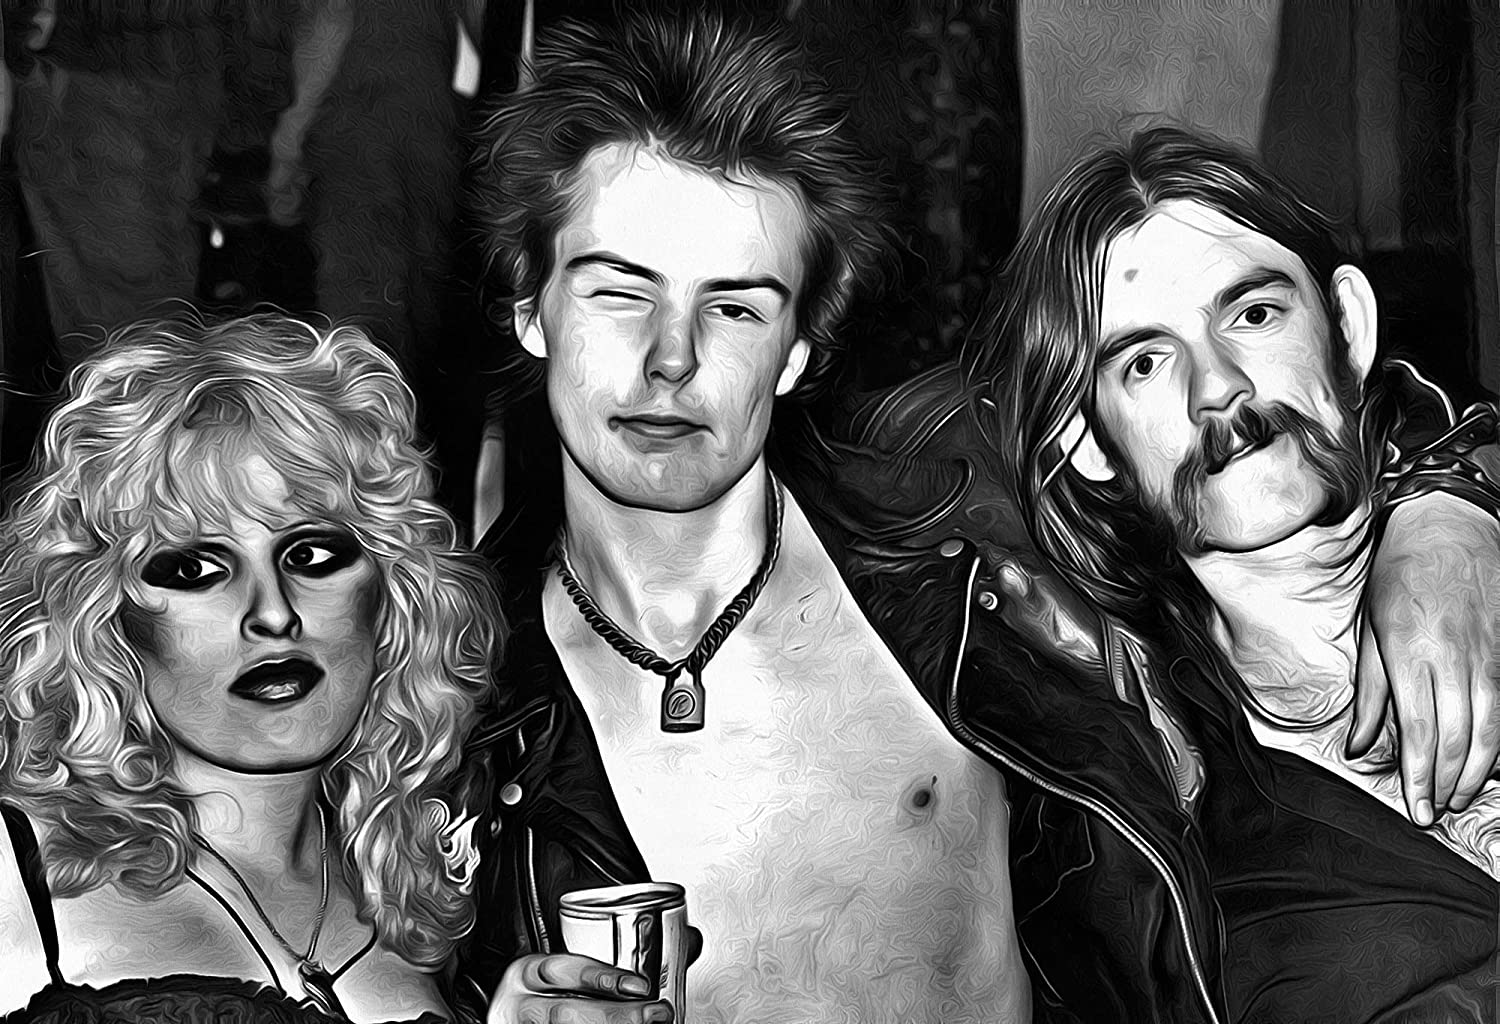 Mile high media lemmy sid vicious canvas poster 13x19 inch fine art canvas rare black and white print